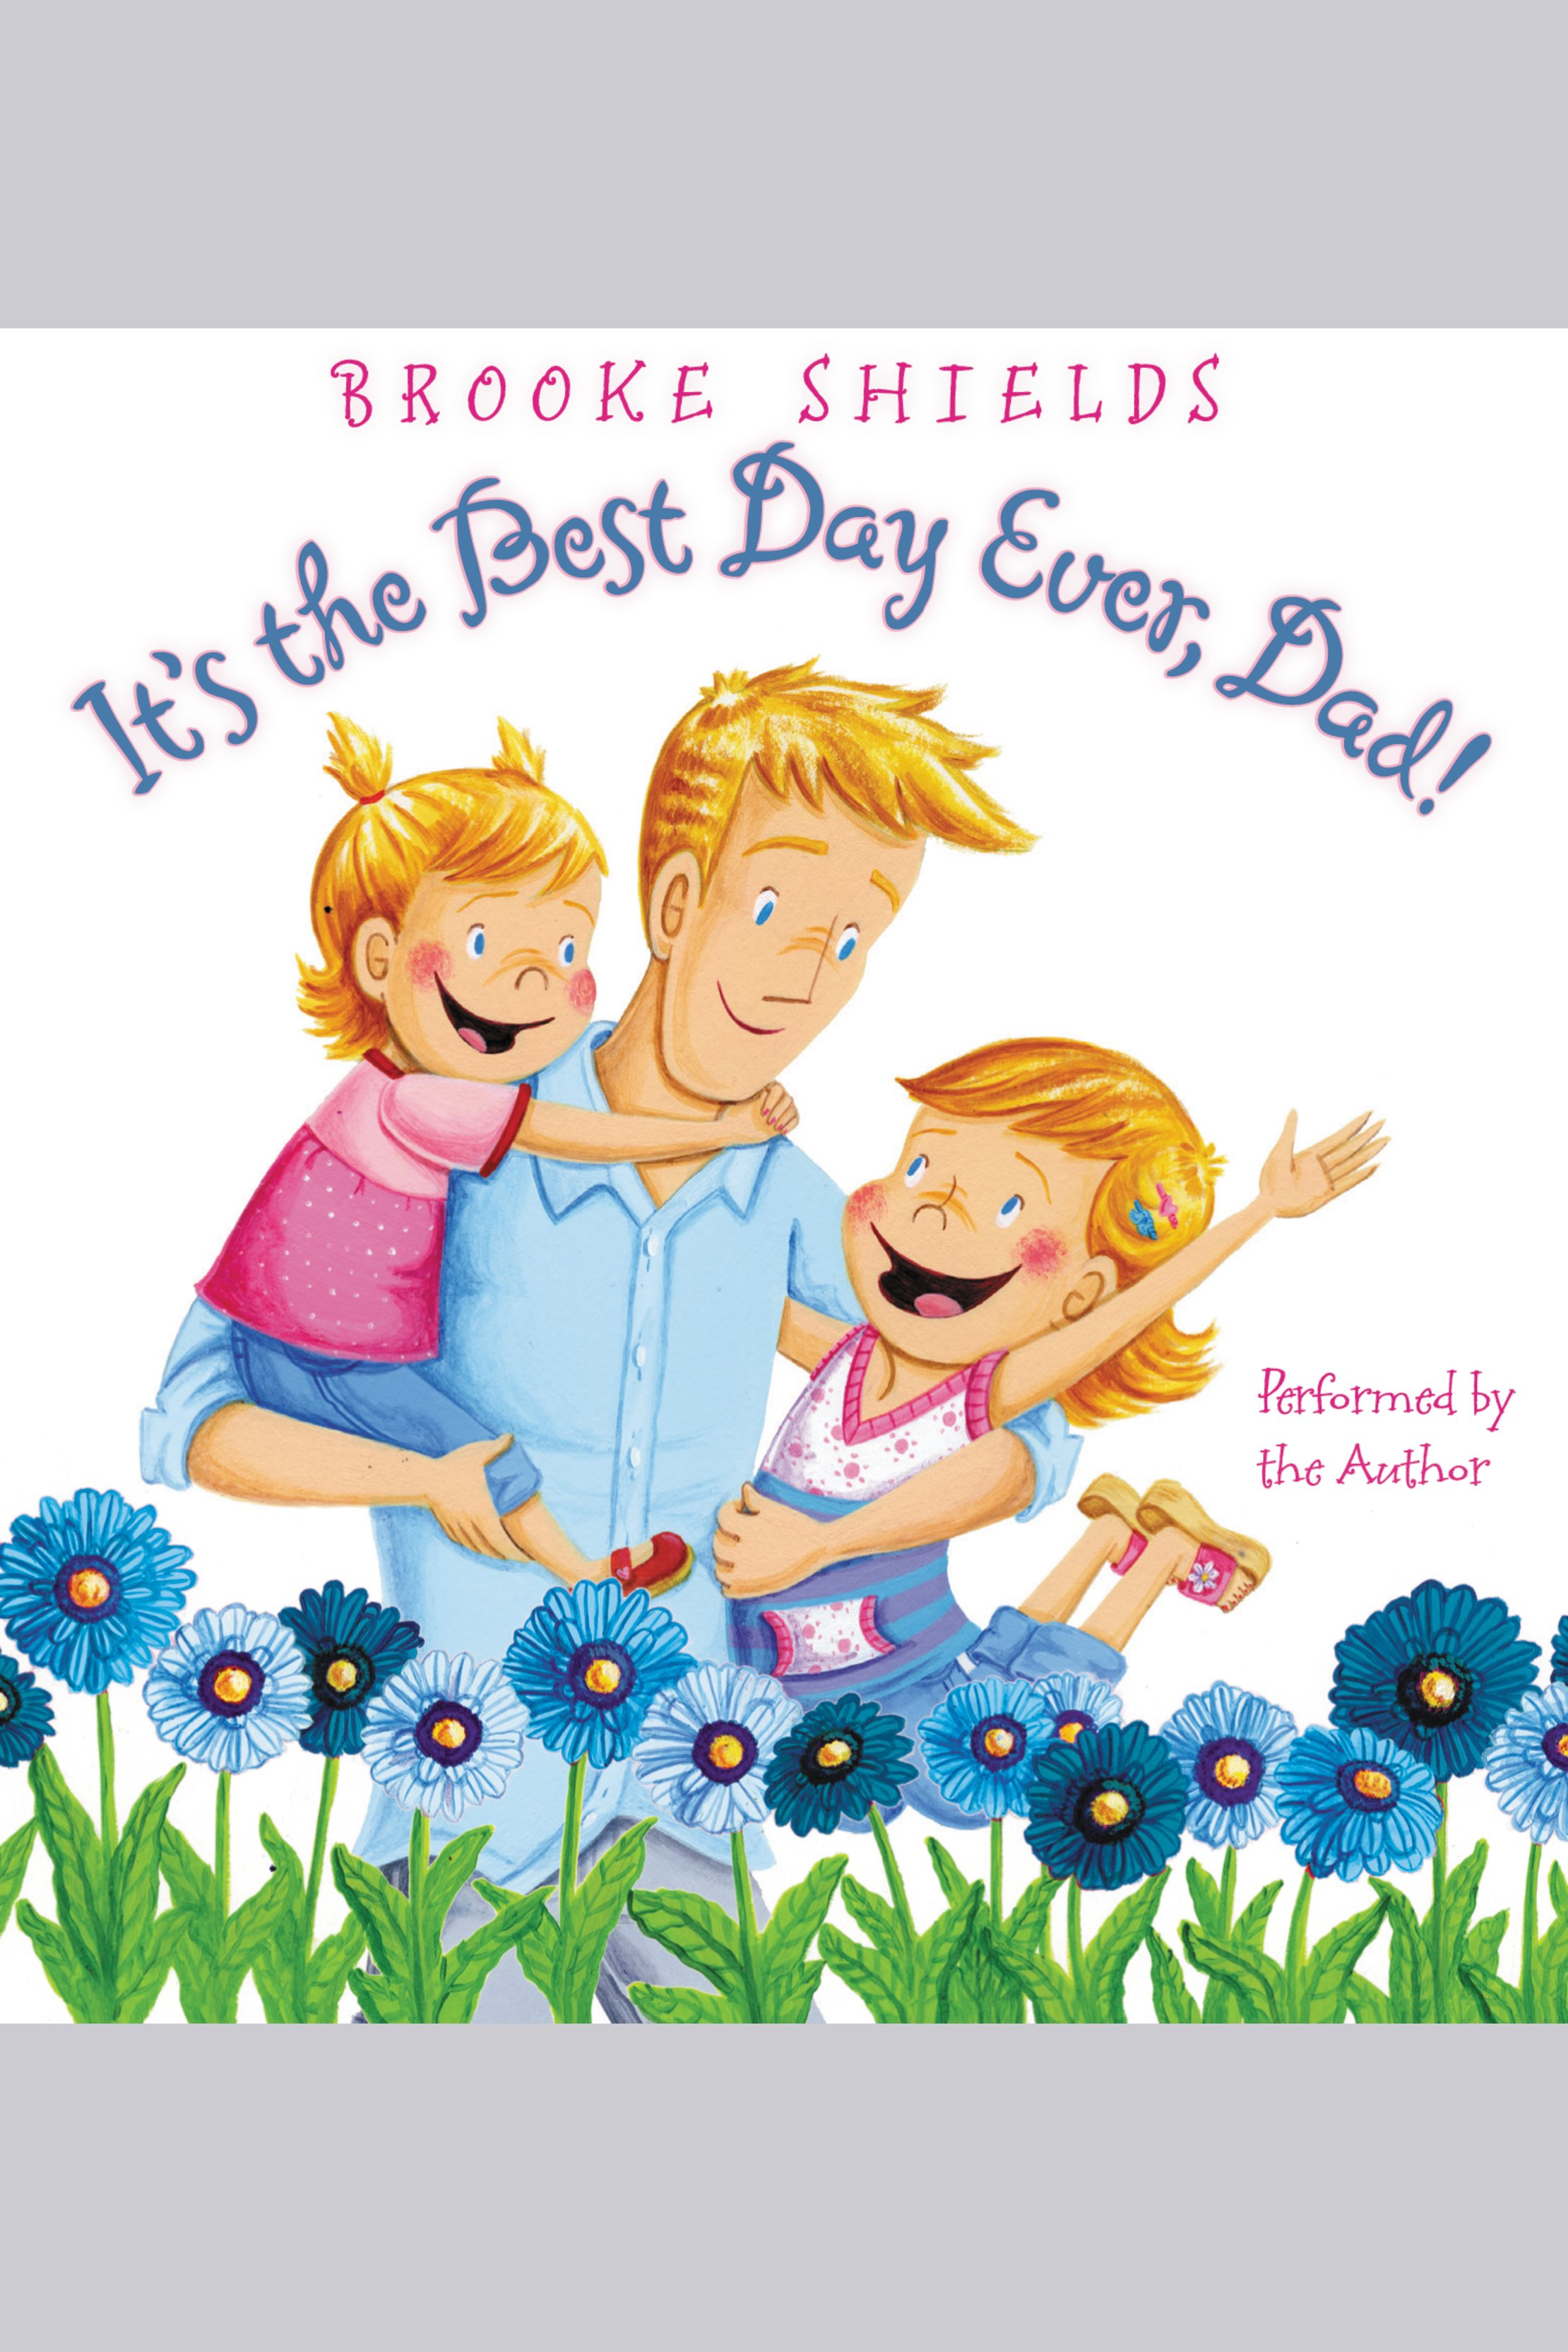 It's the best day ever, dad! cover image